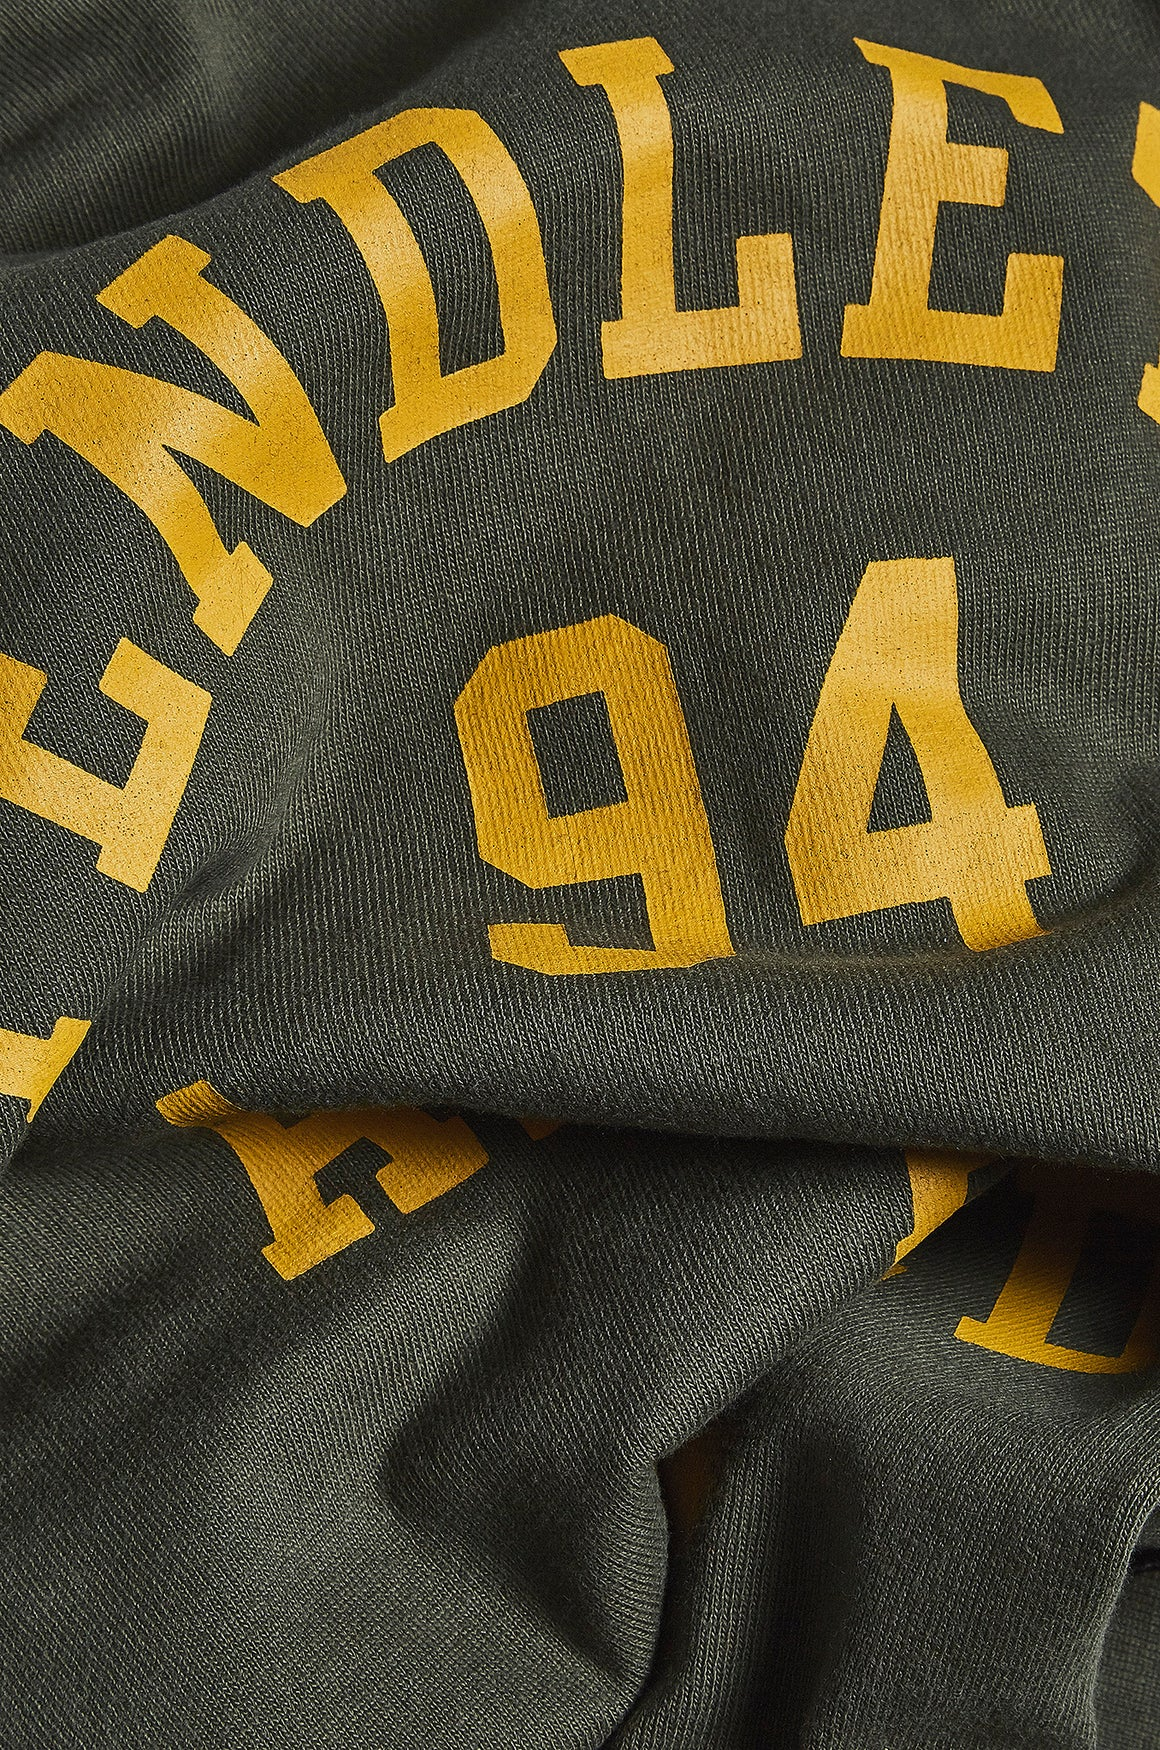 Pendleton Field Tee with Yellow Writing - USAAF WW2 - realm empire